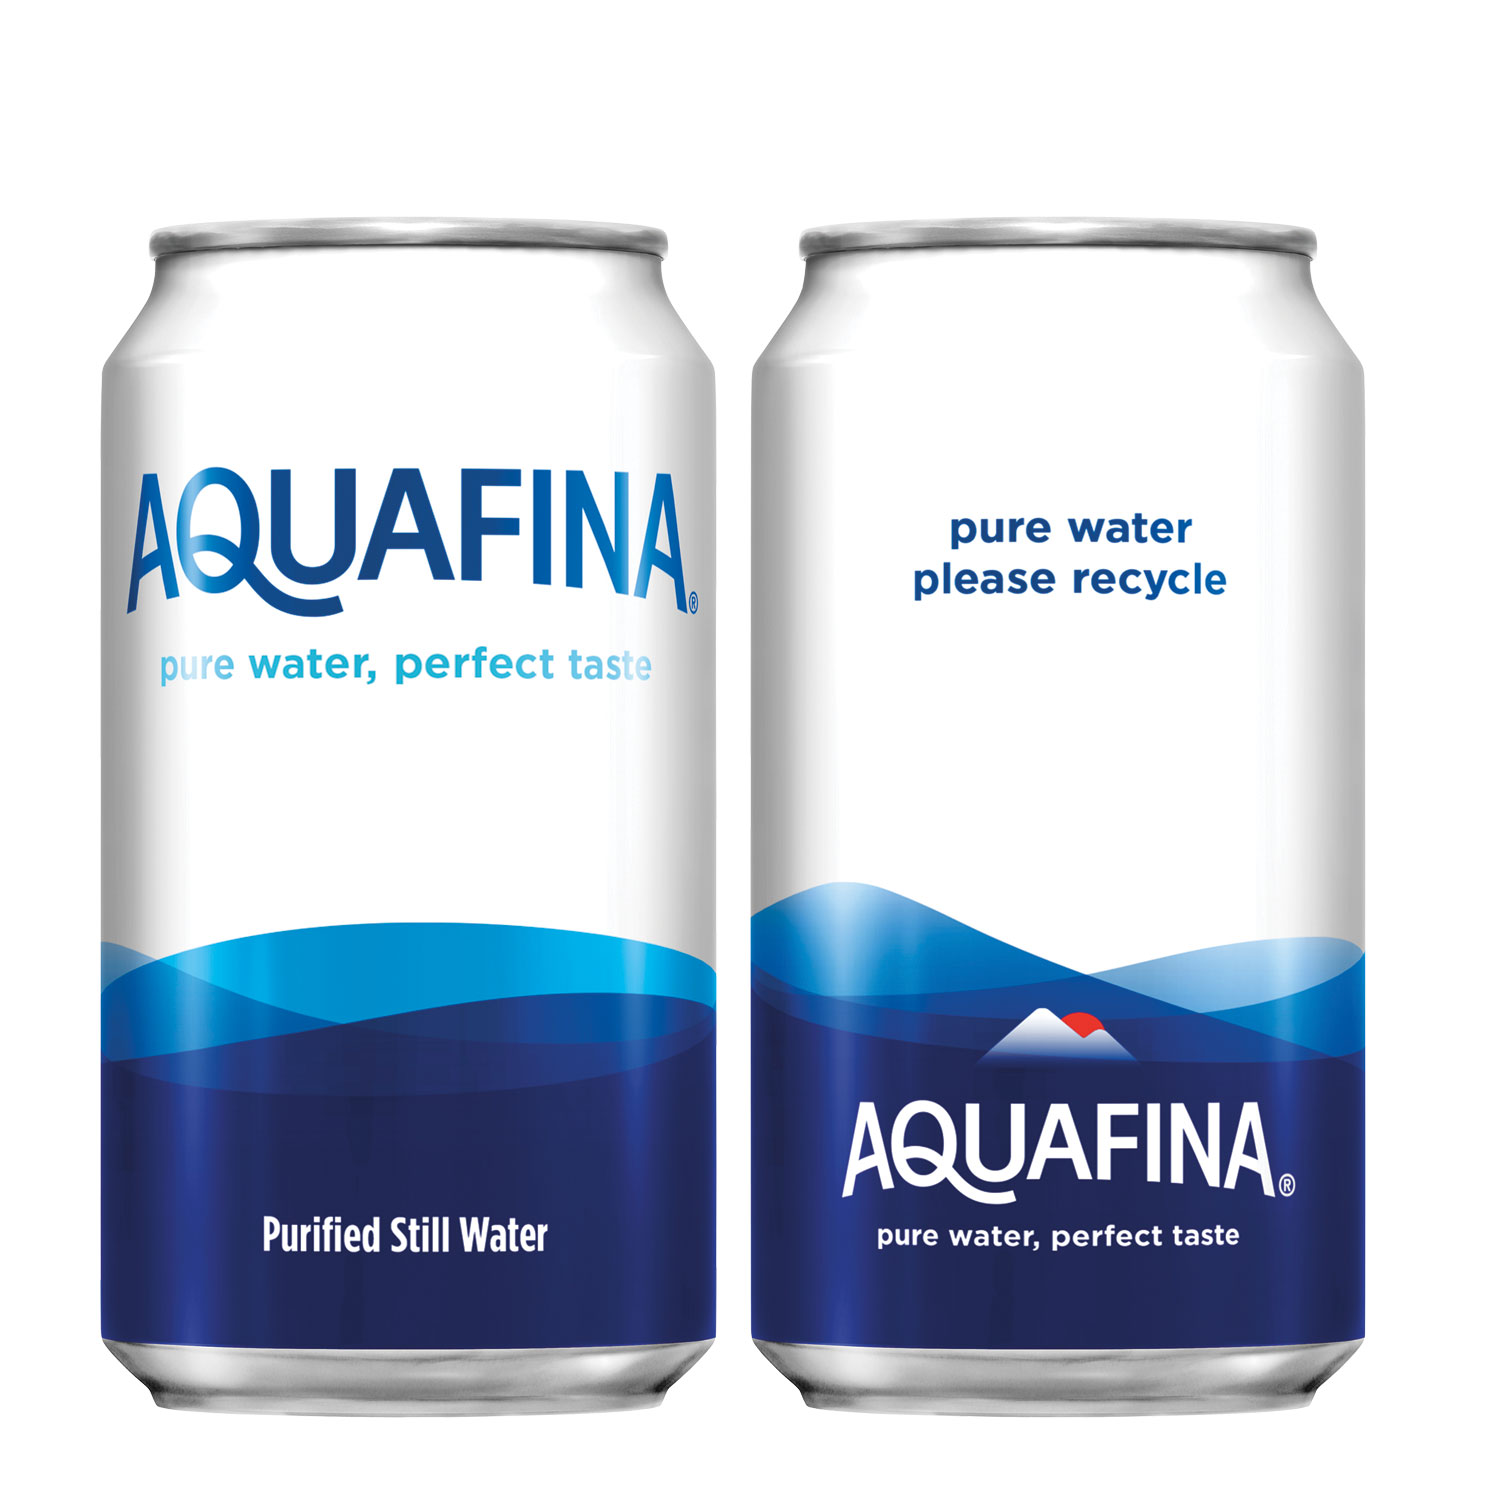 PepsiCo is testing Aquafina in cans in an attempt to move away from plastic.